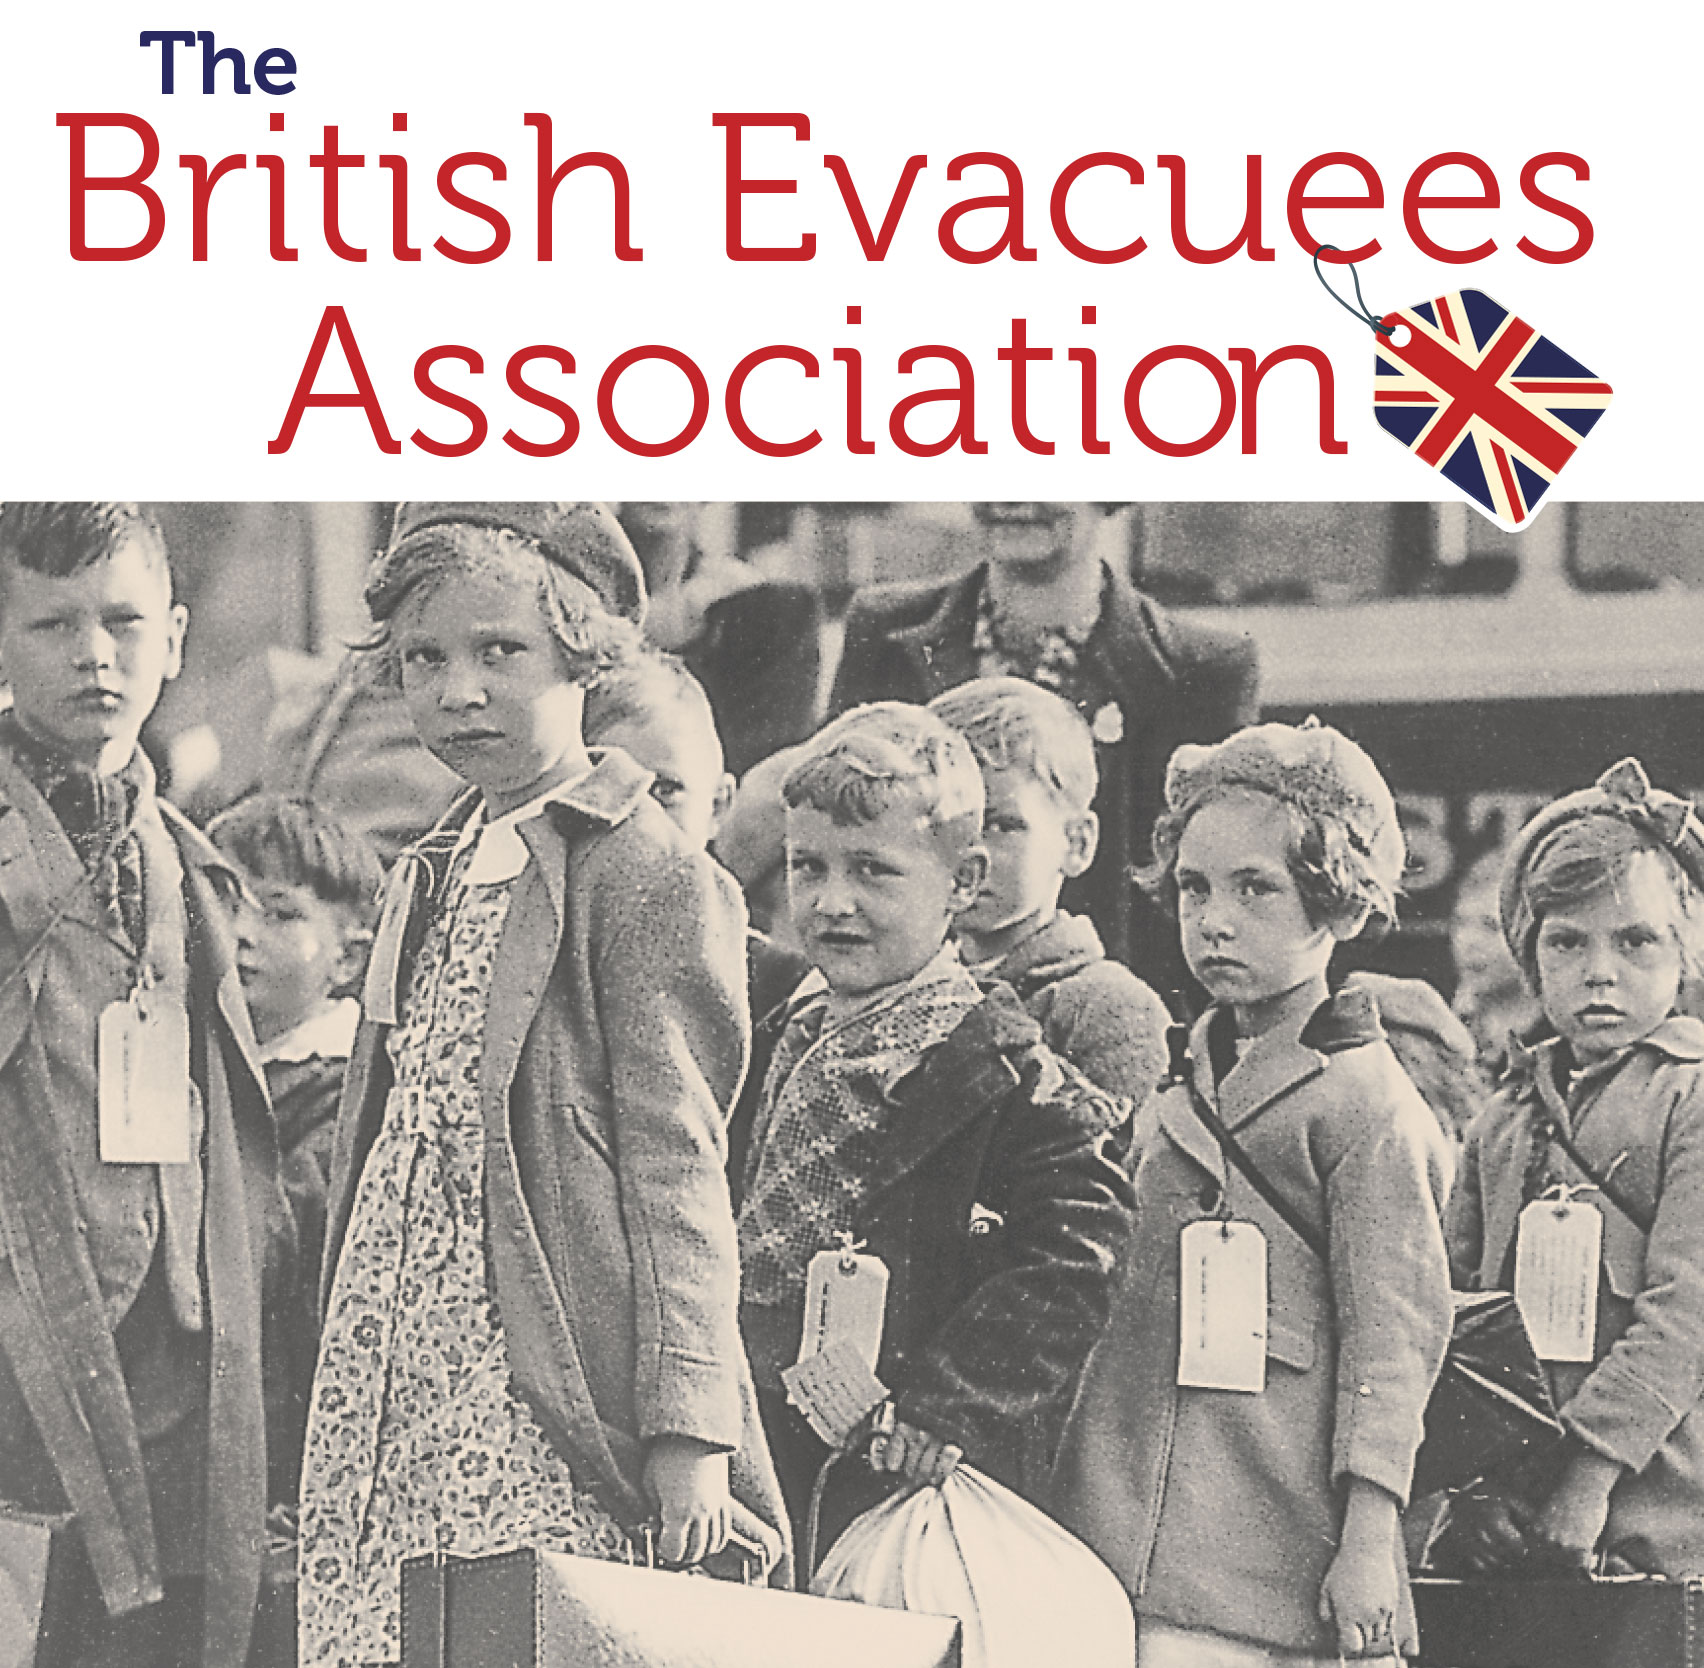 The British Evacuee Association, a non profit registered charity for the evacuated children during the second world war